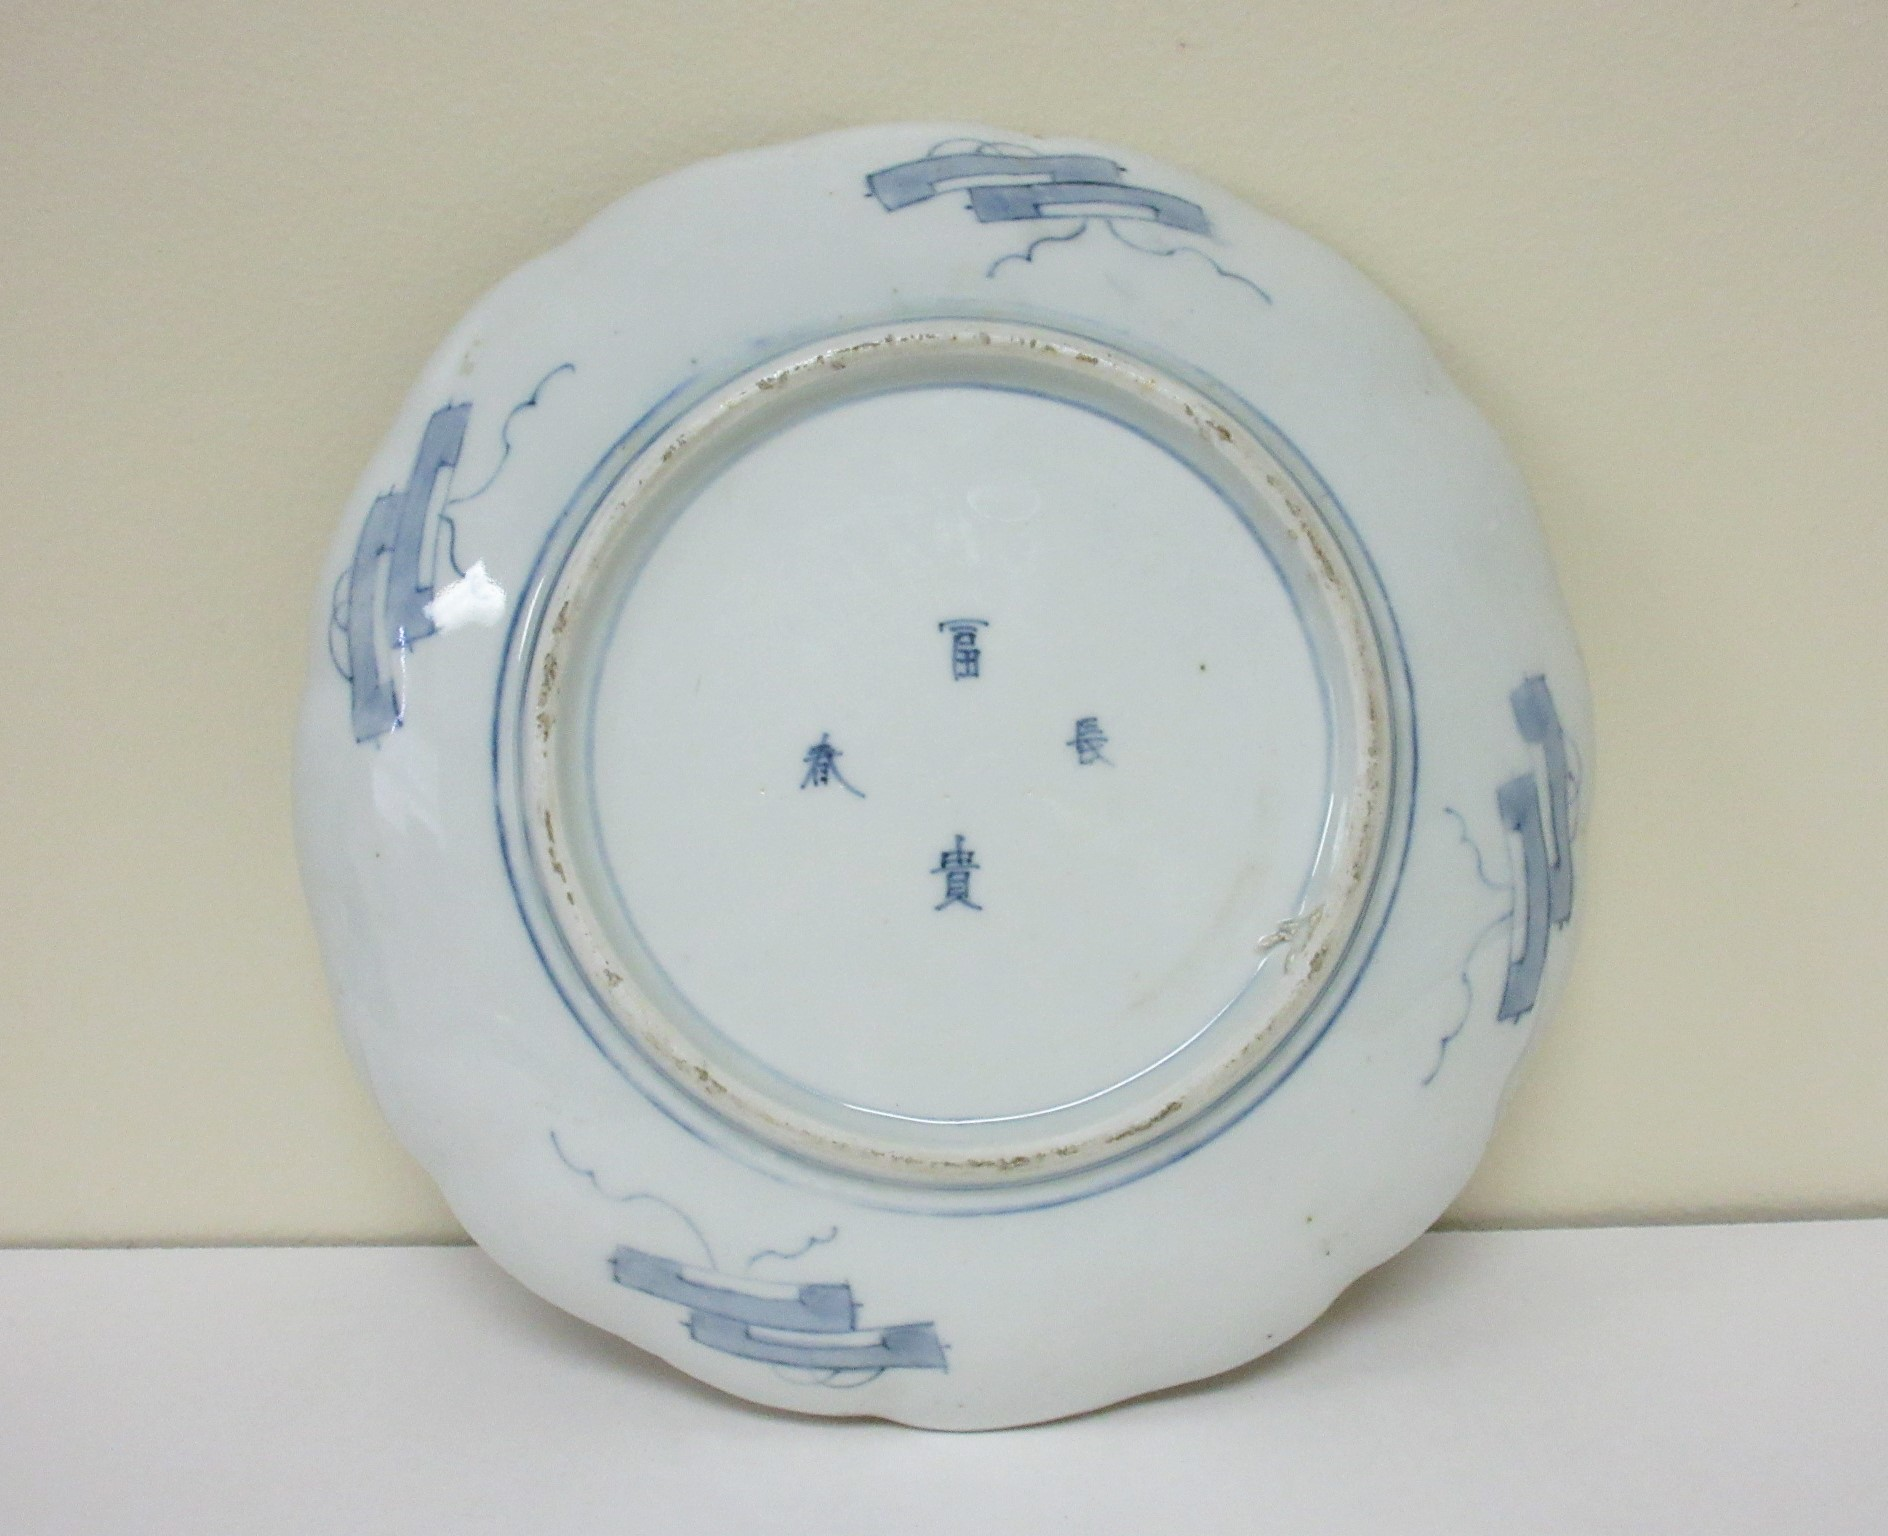 Antique Japanese Imari Meji period plate